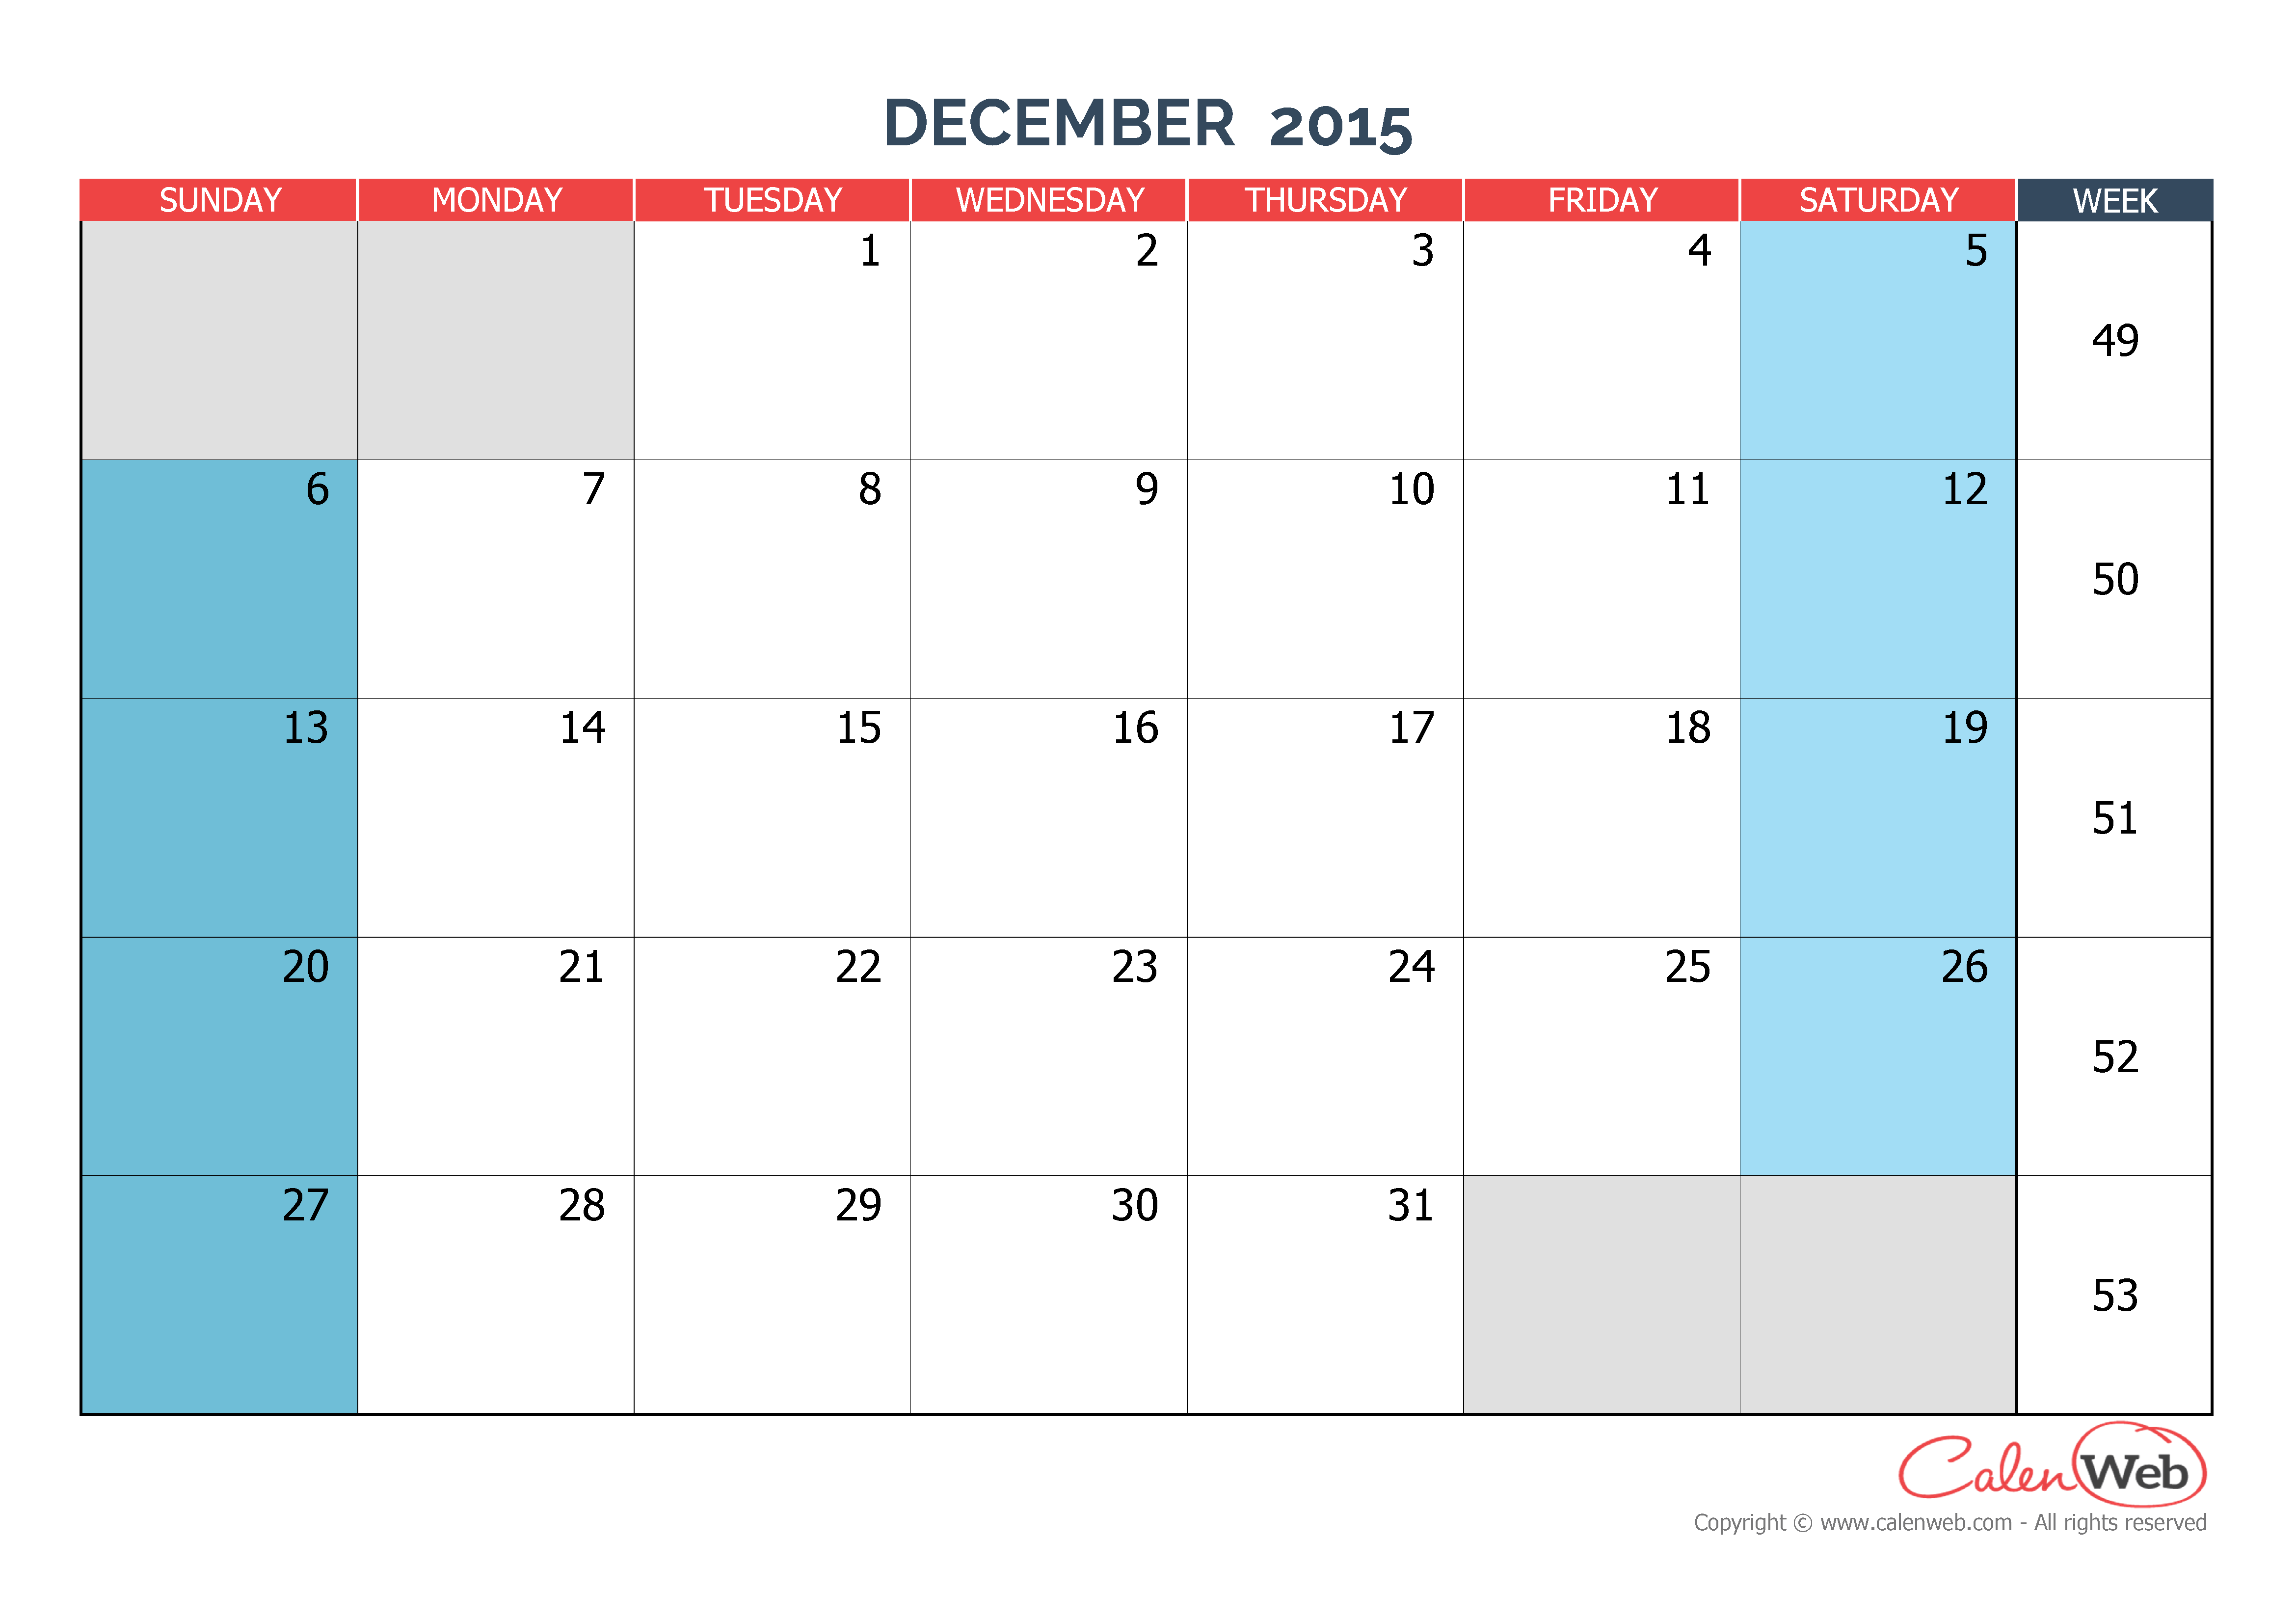 monthly calendar - month of december 2015 the week starts on sunday